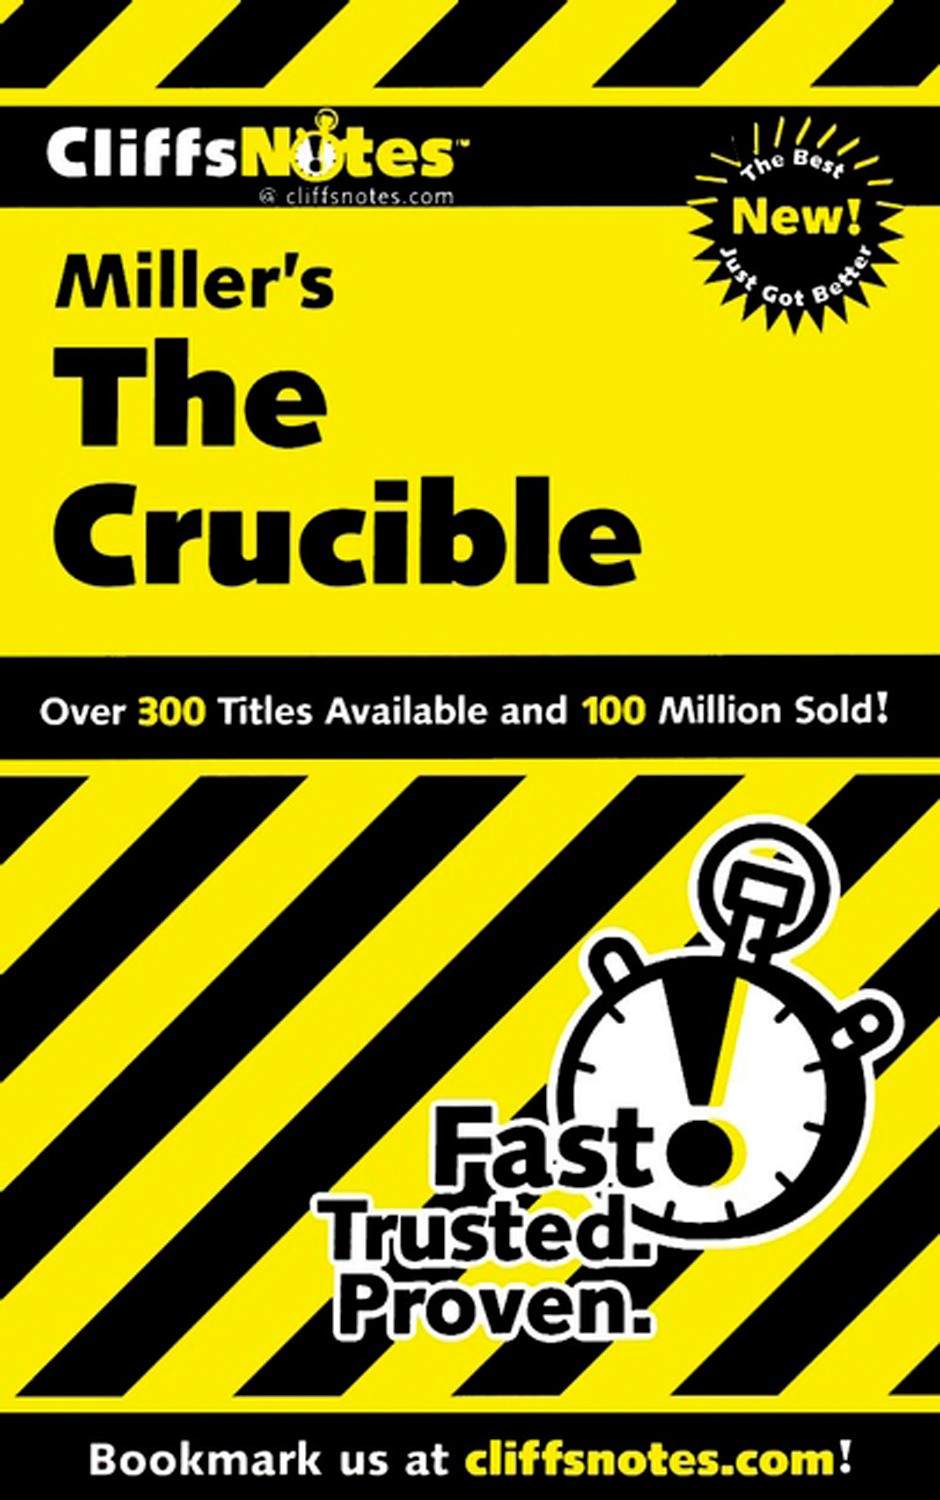 CliffsNotes on Miller's The Crucible-9780764585883